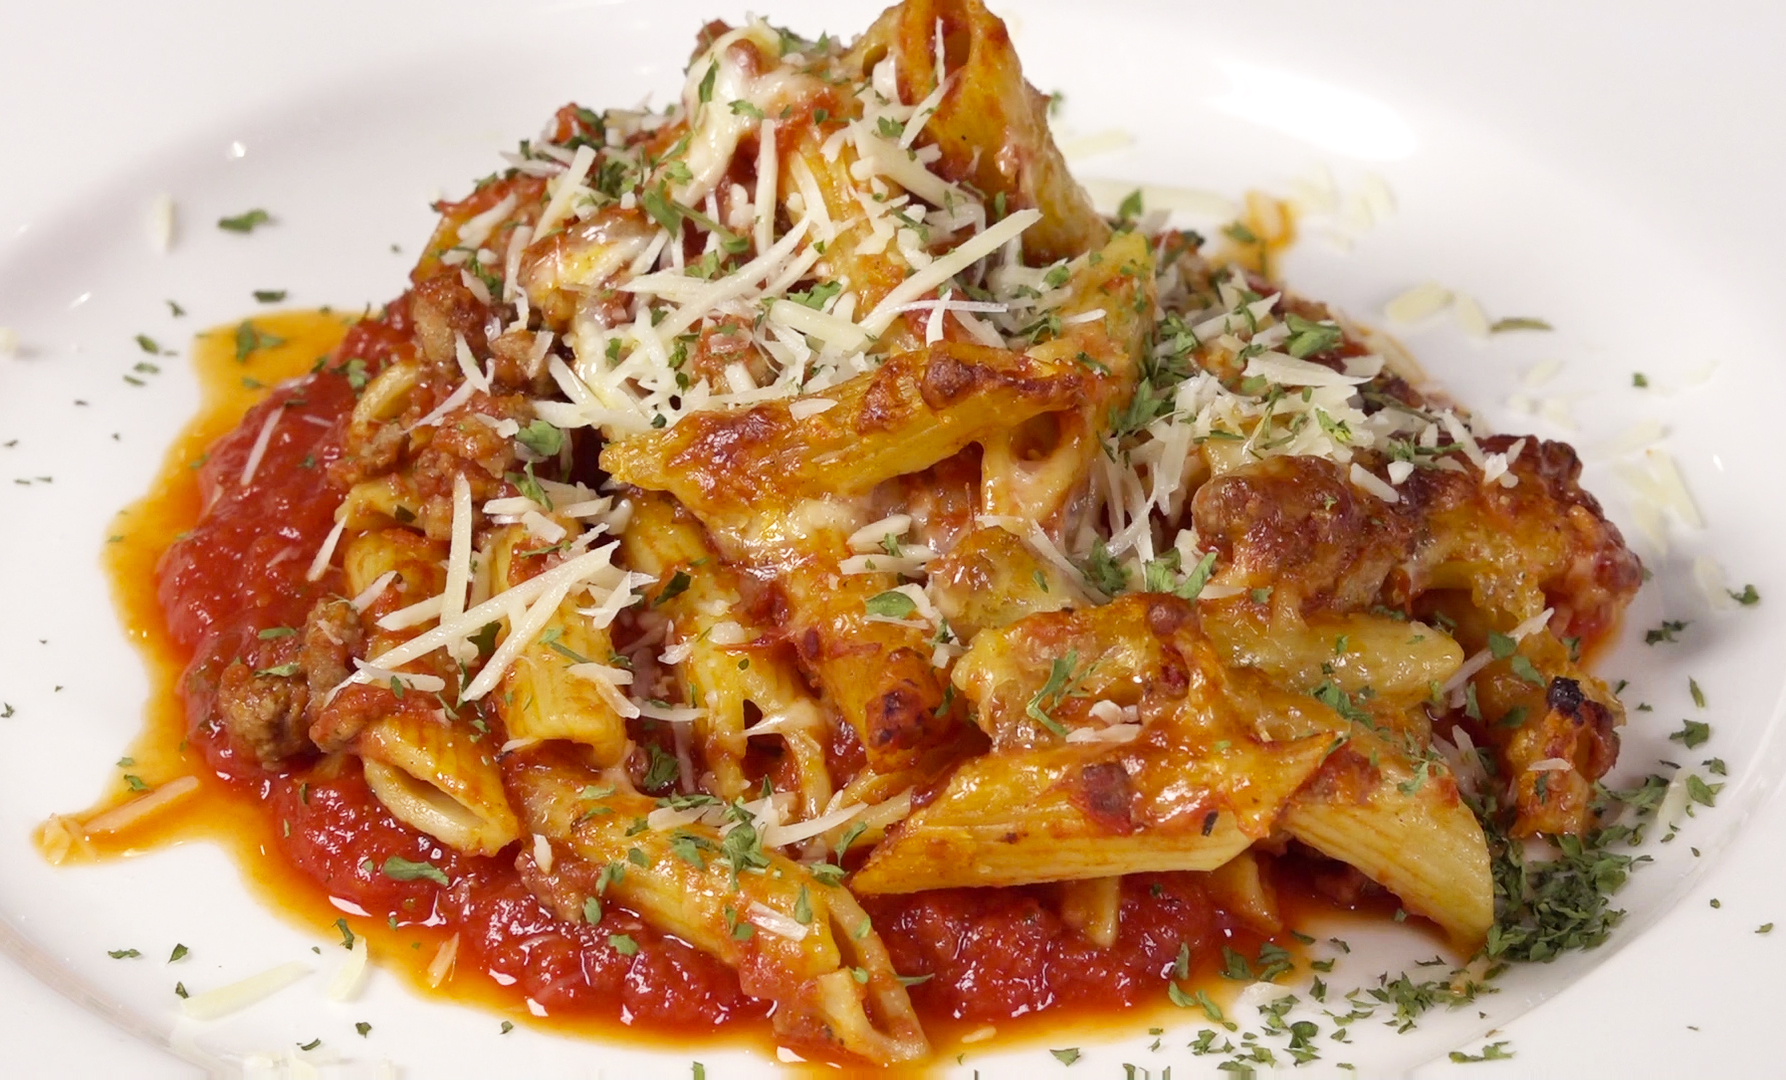 nicholas's-cheesy-baked-penne-pasta2.jpg